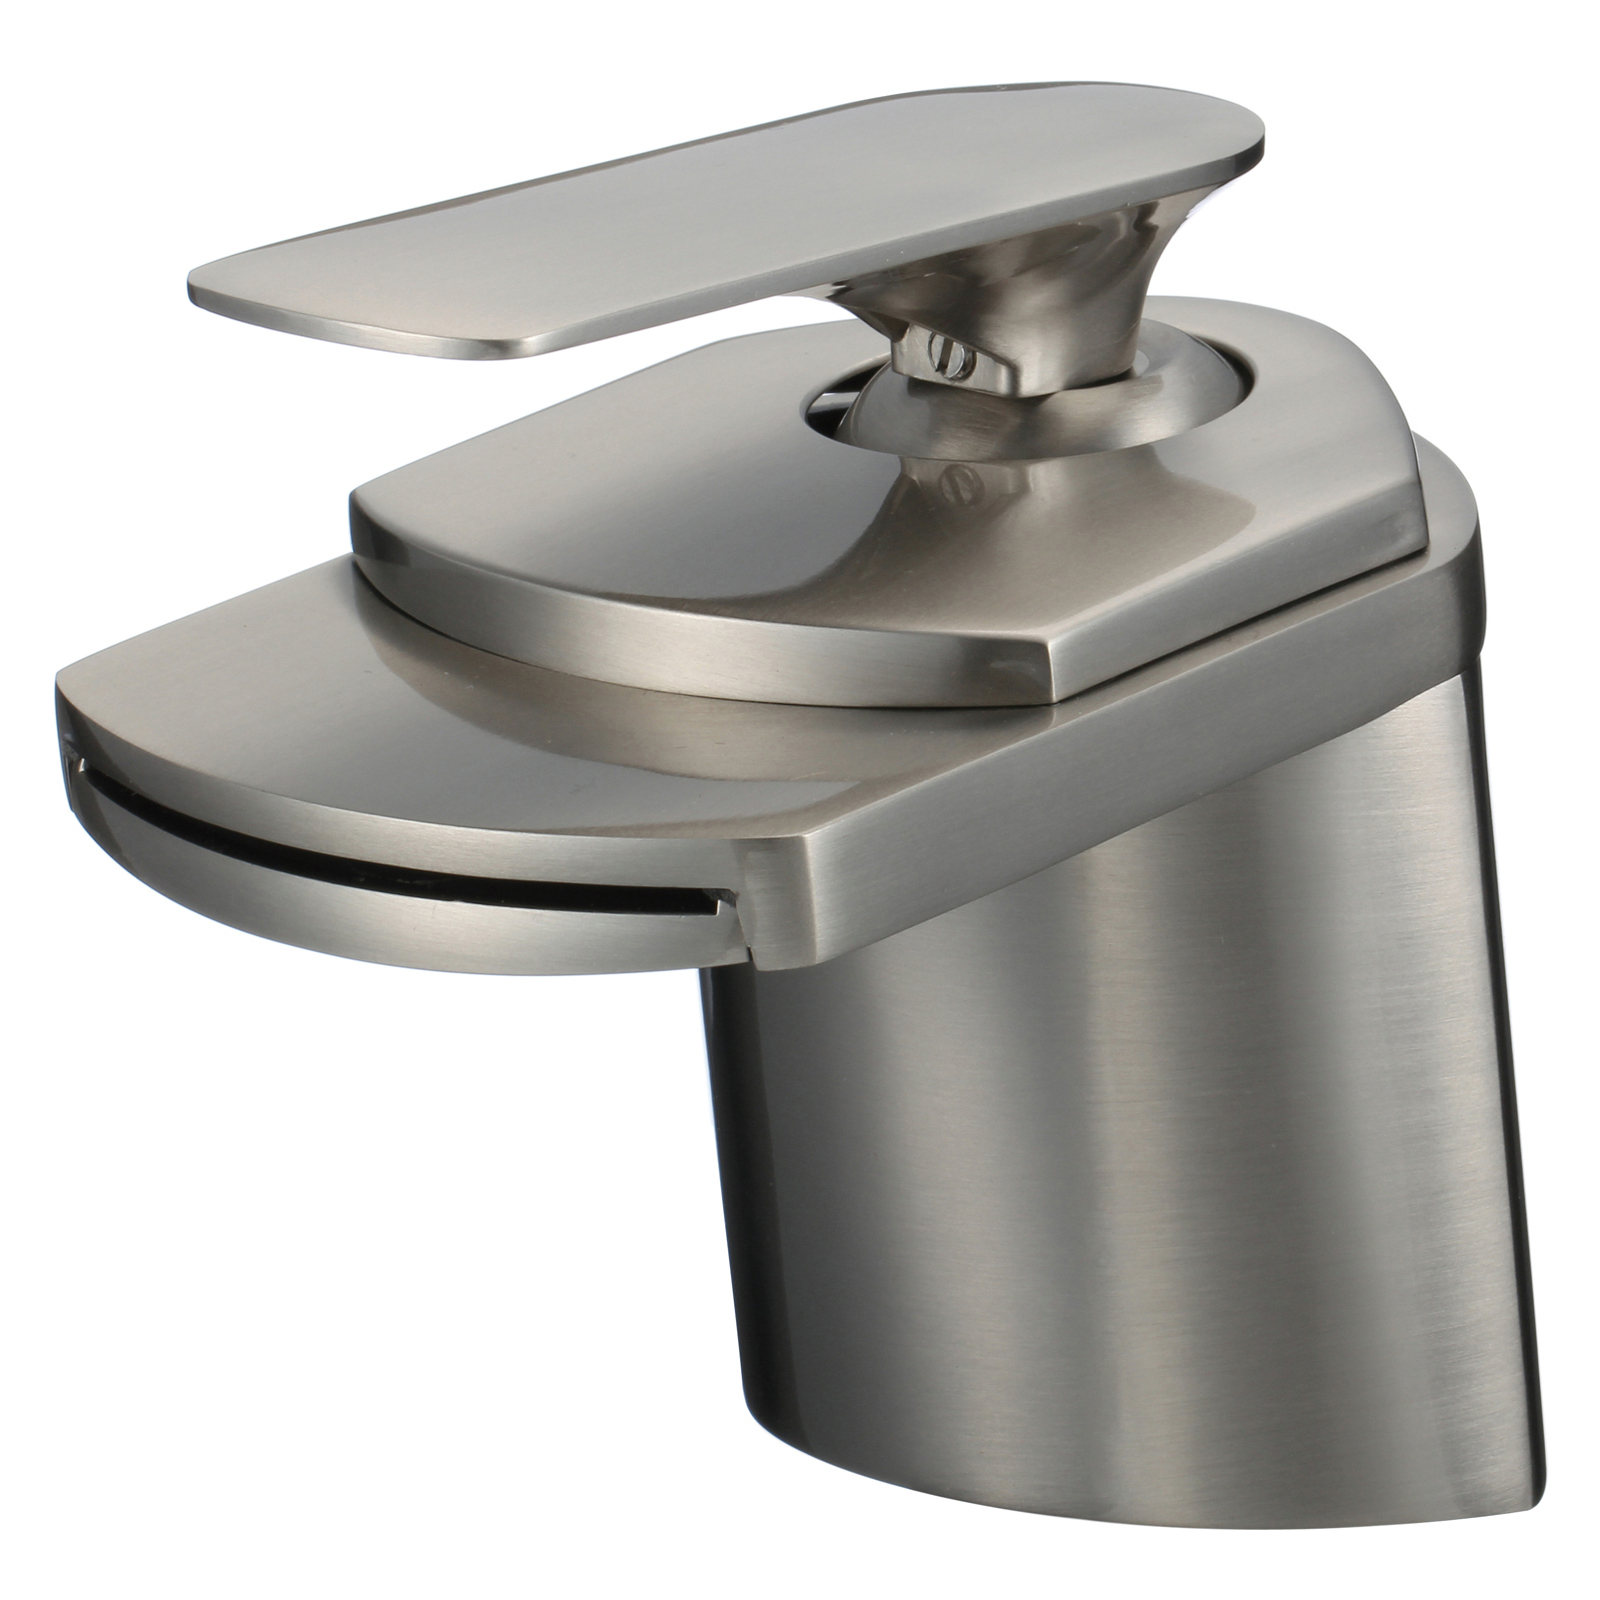 "Modern Kitchen Sink Faucets: 6"" Modern Bathroom Sink Faucet"